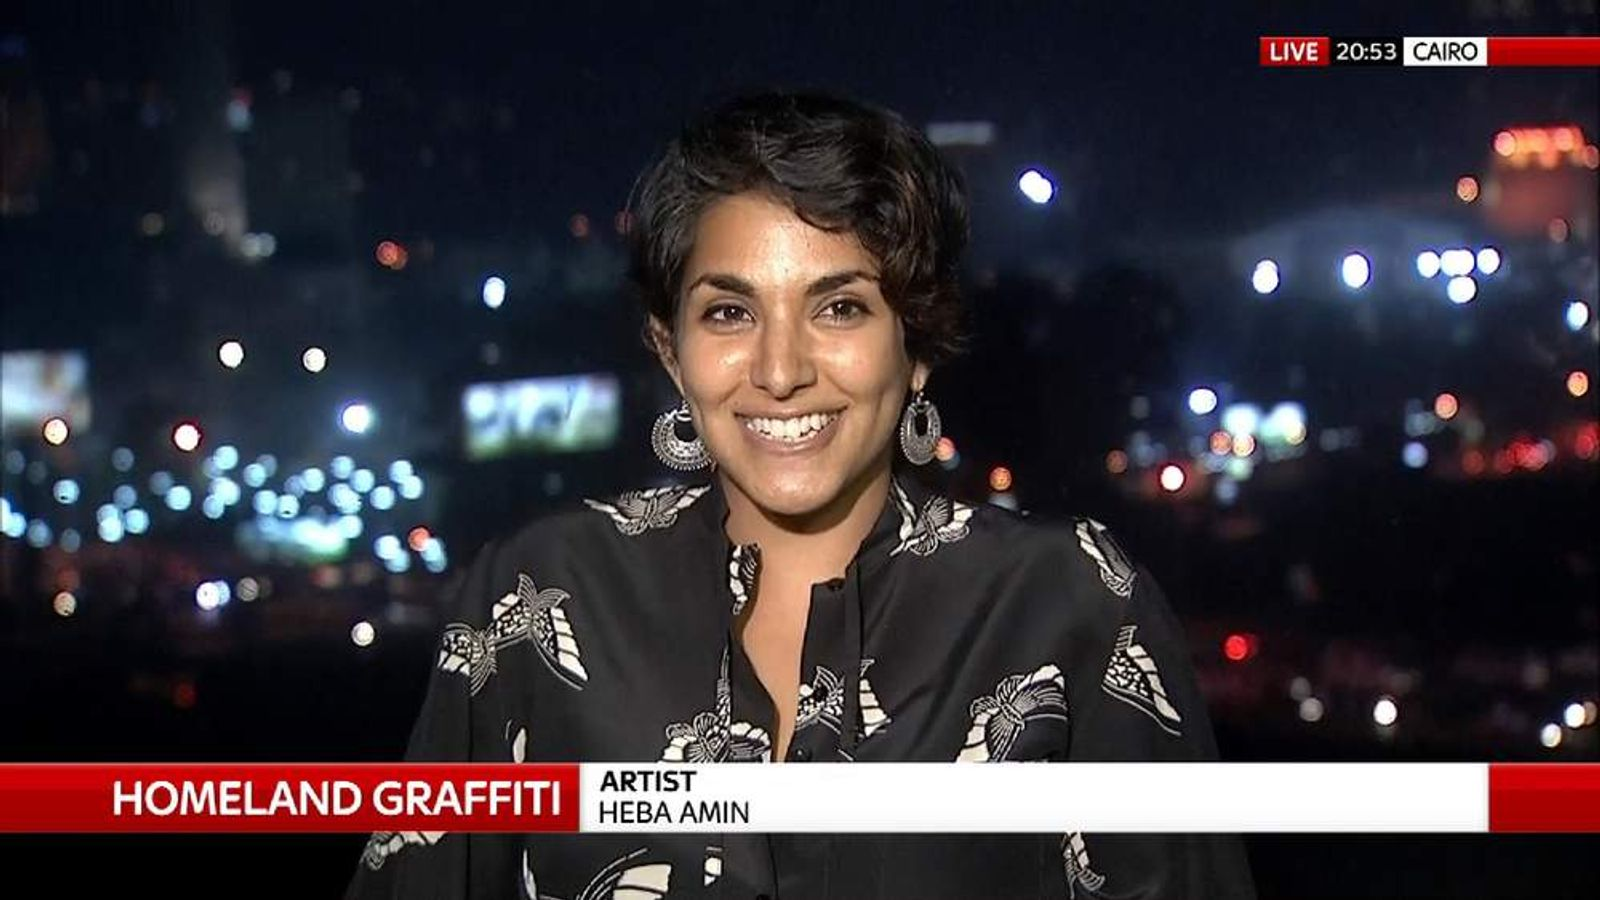 Artist Heba Amin explains why she criticised the show through on-set graffiti